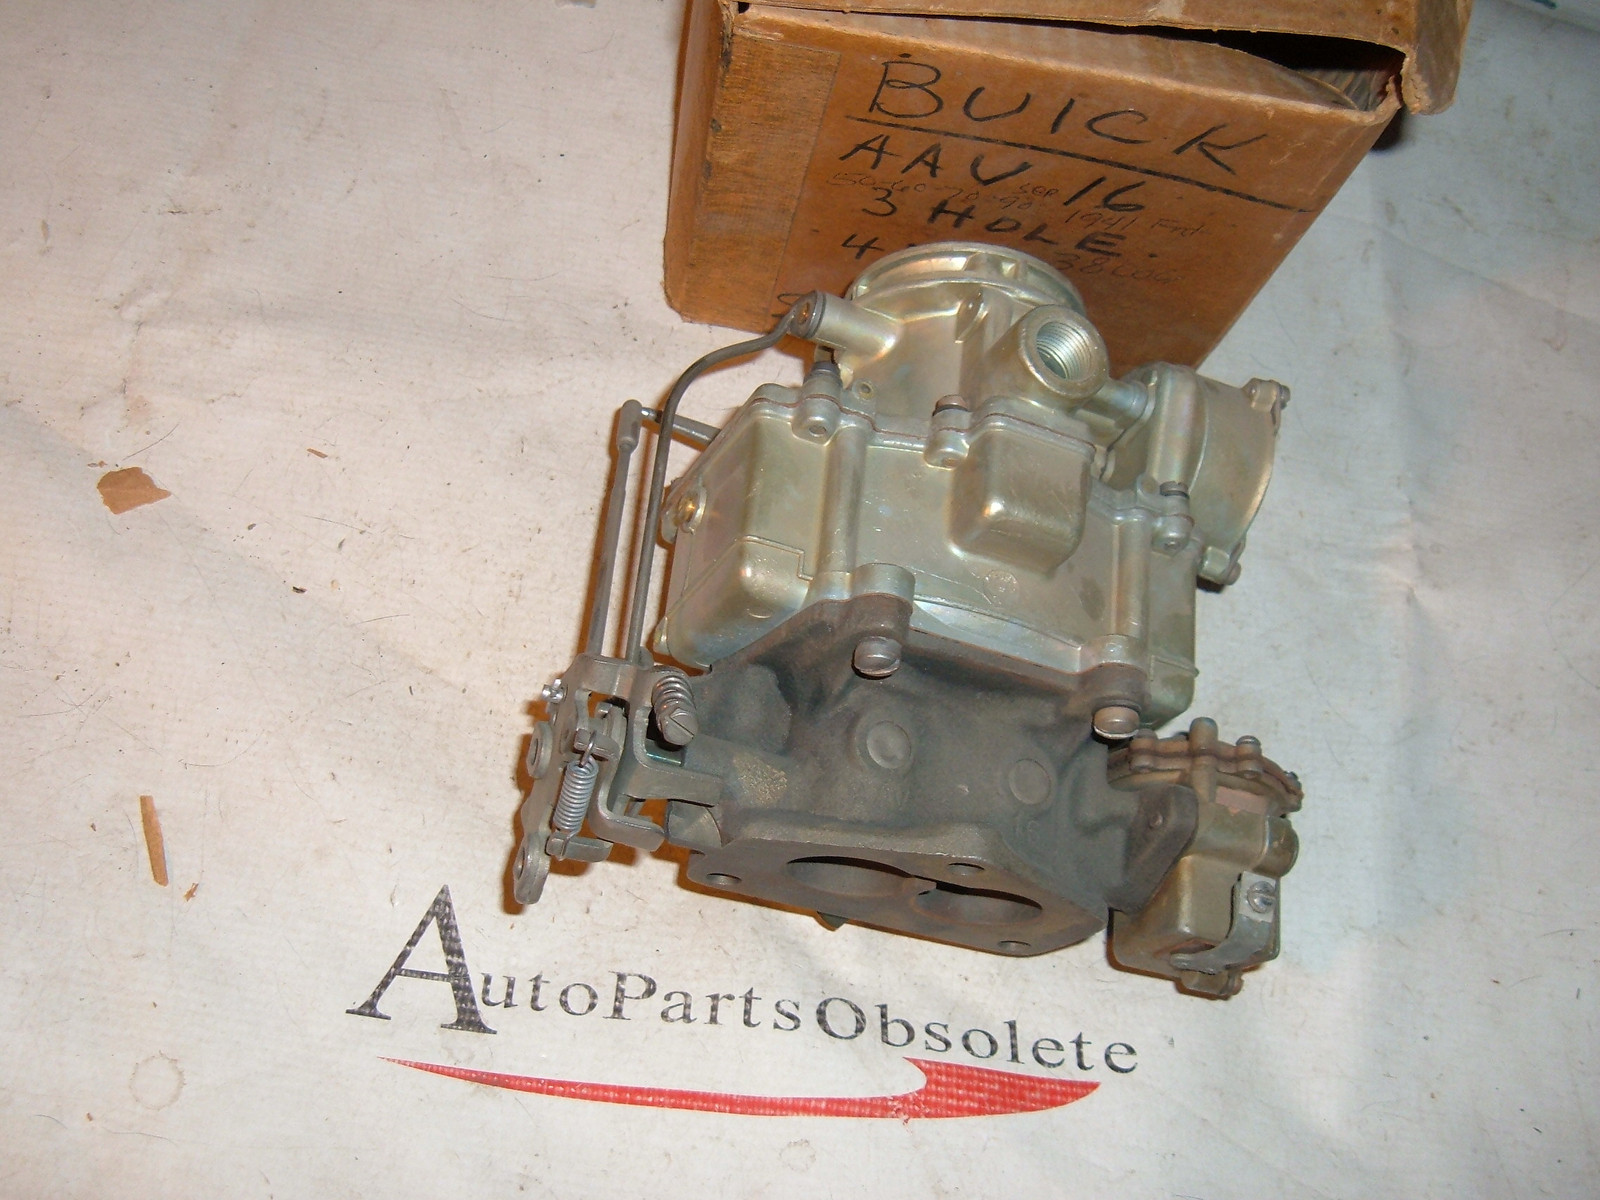 1941 buick stromberg carburetor new # 7-46 380061 (z 746)